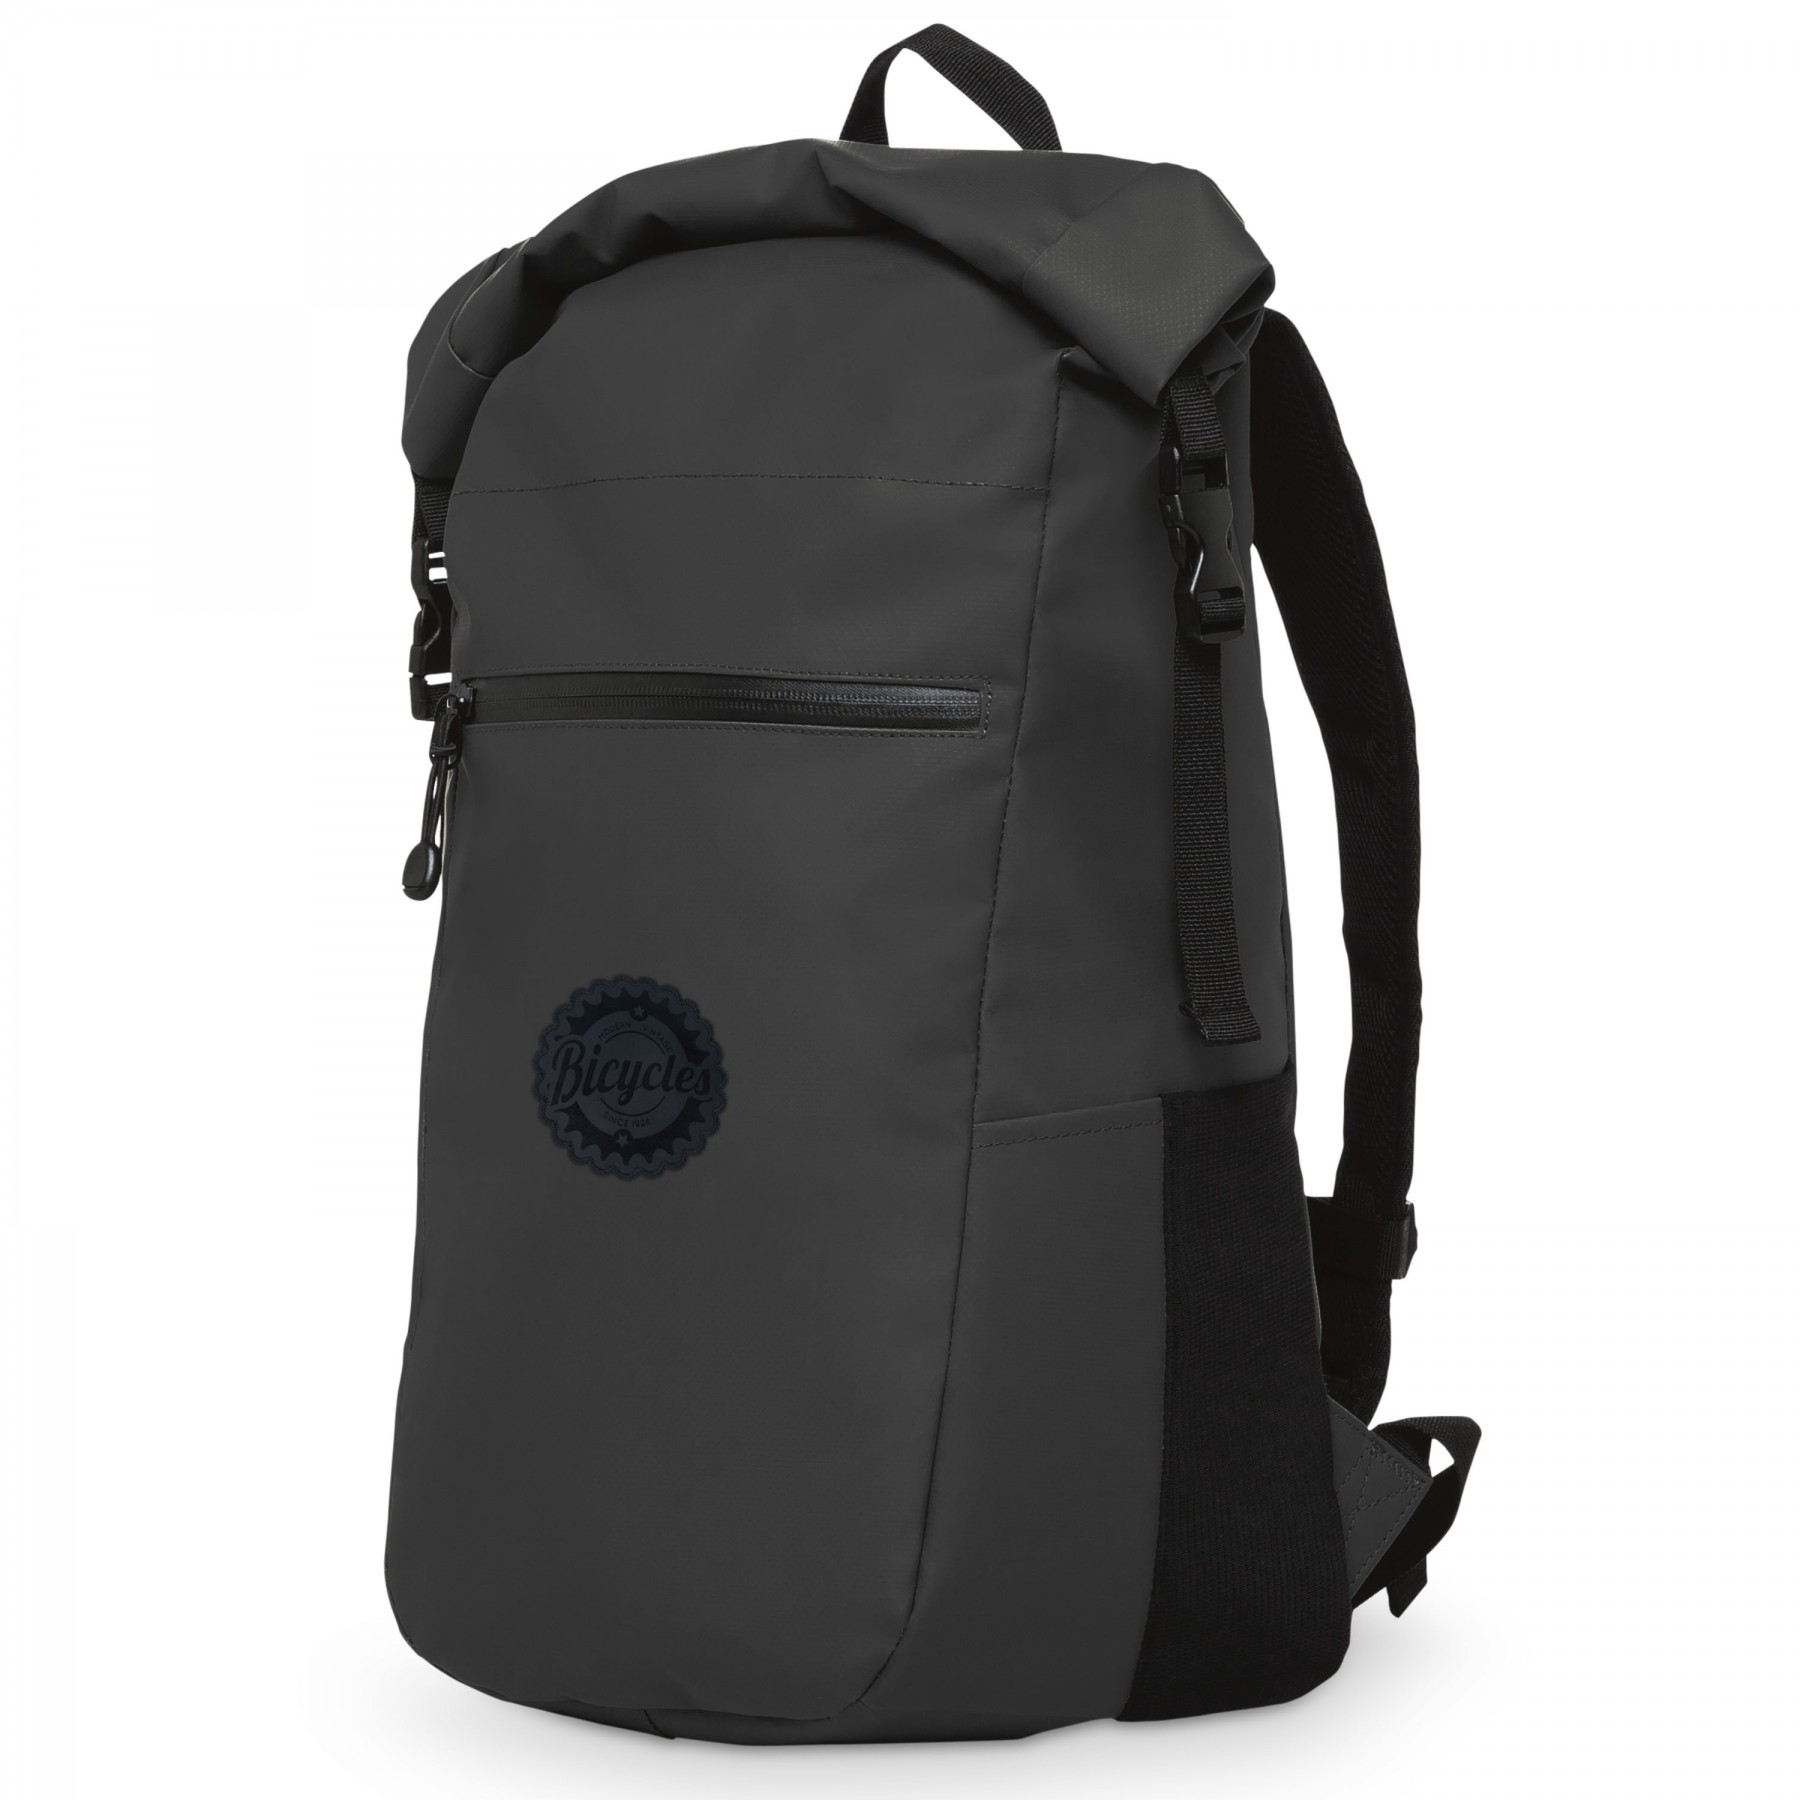 Call Of The Wild Roll-Top Water Resistant 22l Backpack, BG103, One Colour Imprint